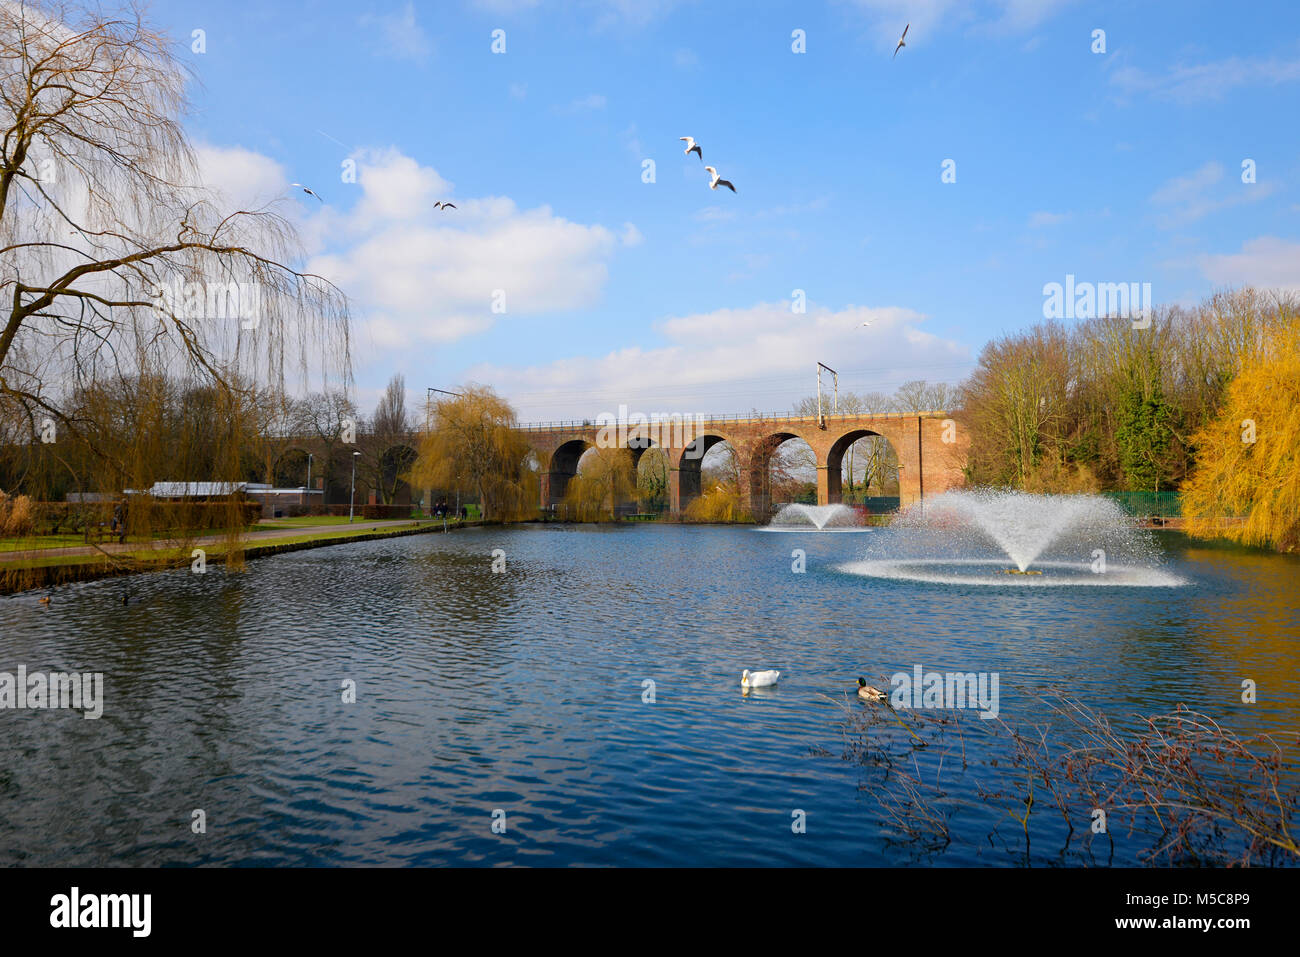 Railway viaduct in Central Park, Chelmsford, Essex. Lake duck pond with fountain. Winter with autumn colours. Fall - Stock Image